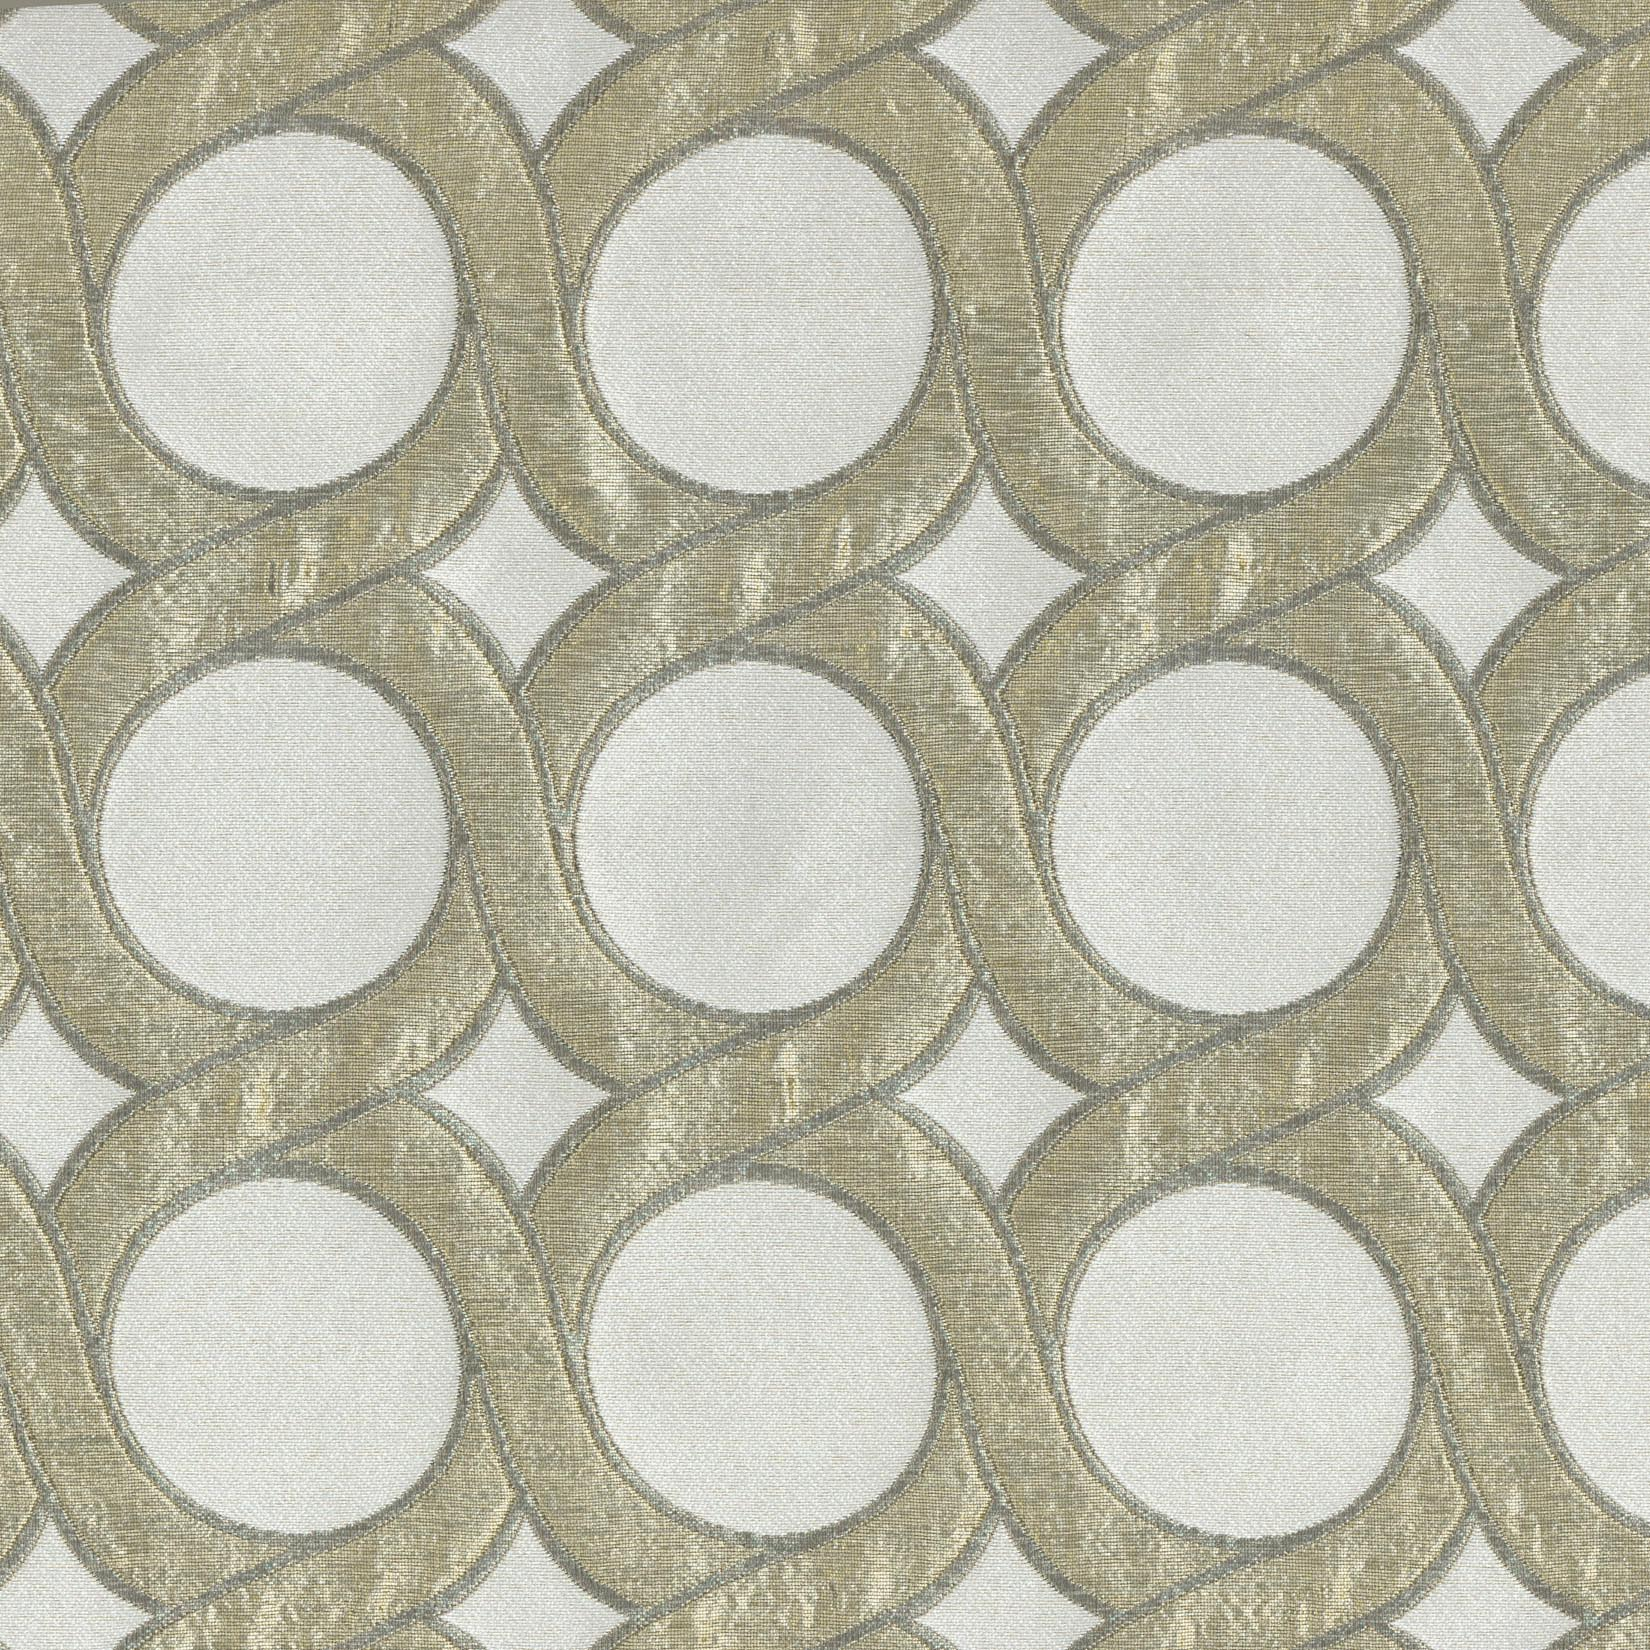 Home Decor 8\u0022x8\u0022 Fabric Swatch-IMAN Home Belle Curve Pearl